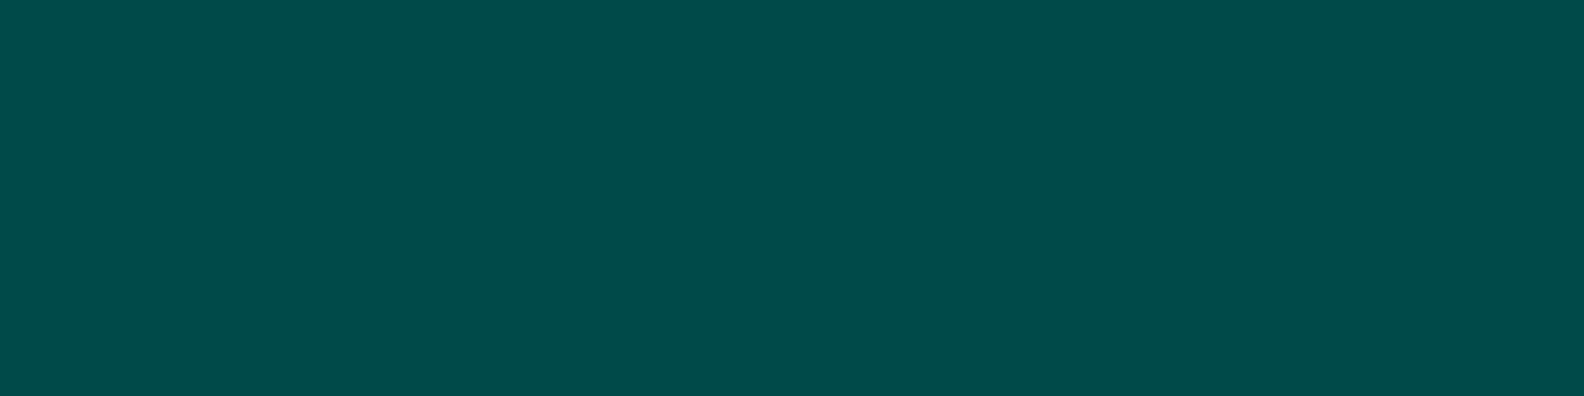 1584x396 Deep Jungle Green Solid Color Background